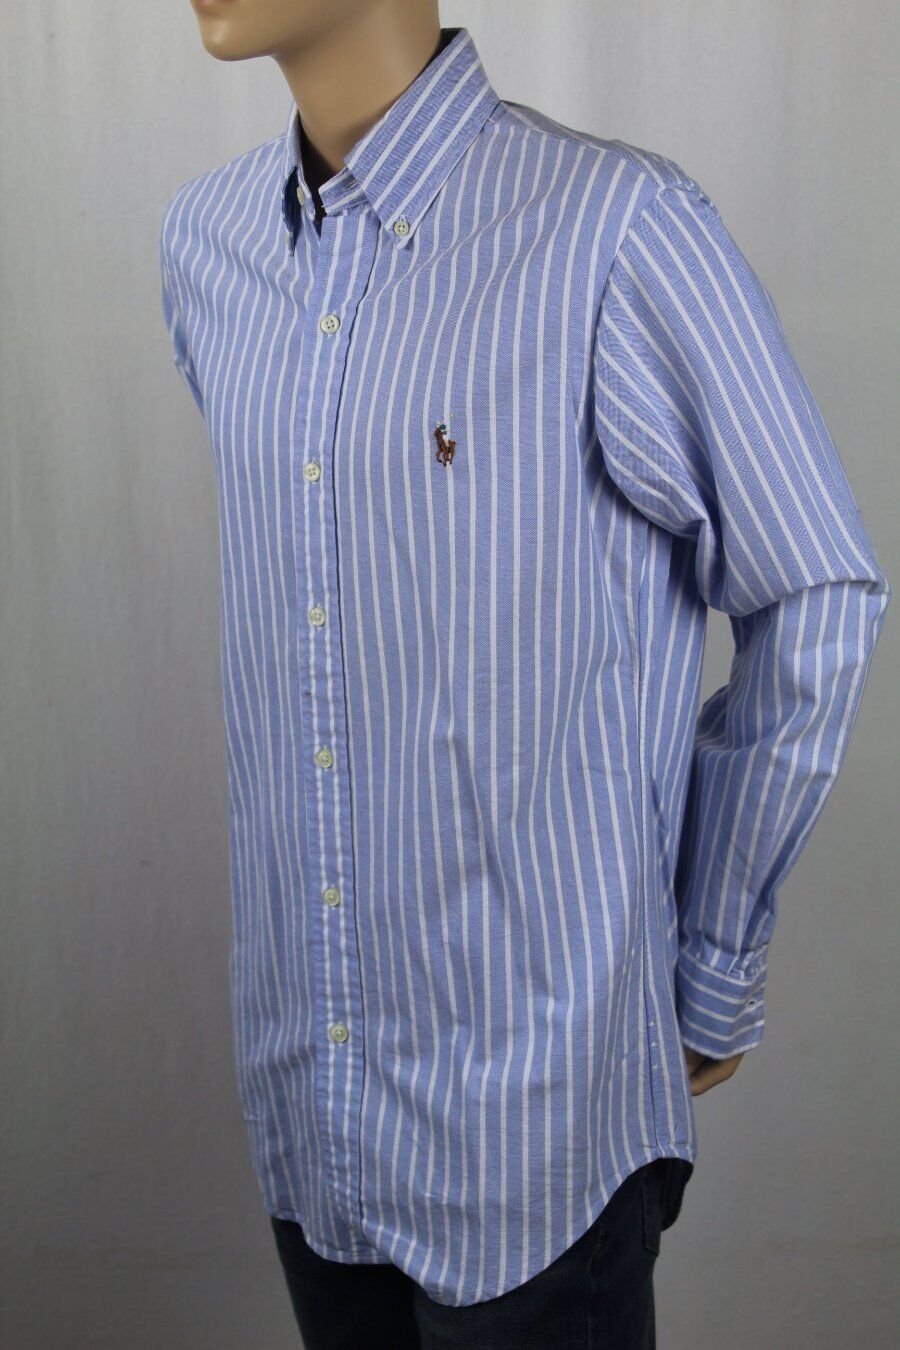 Ralph Lauren bluee Striped Classic Oxford Dress Shirt Multi colord Pony NWT